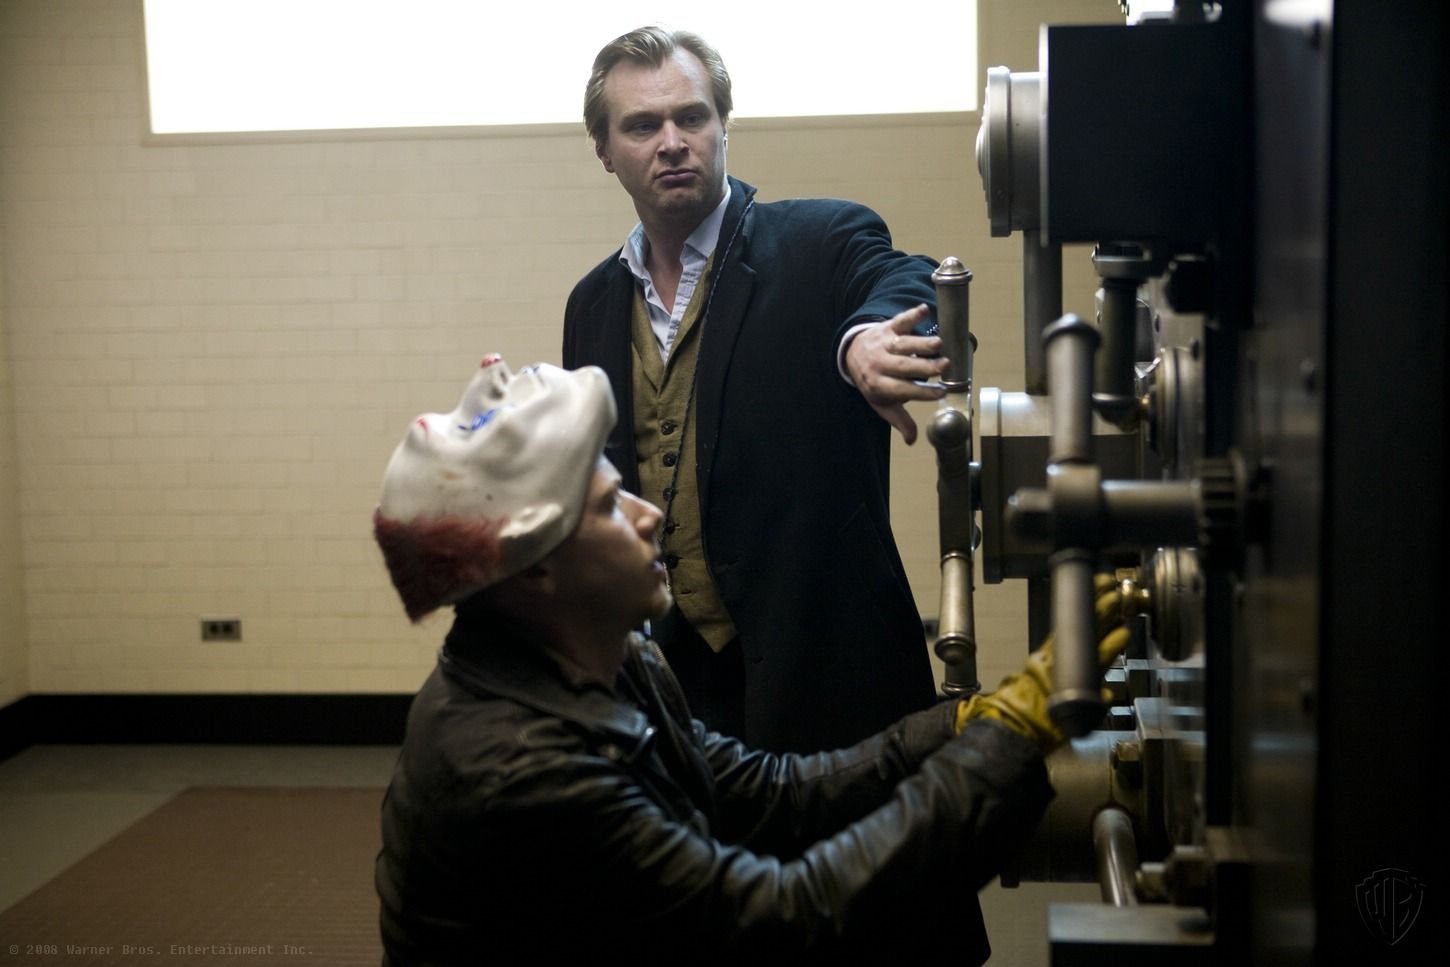 An Agency of Chaos: Christopher Nolan's 'The Dark Knight'